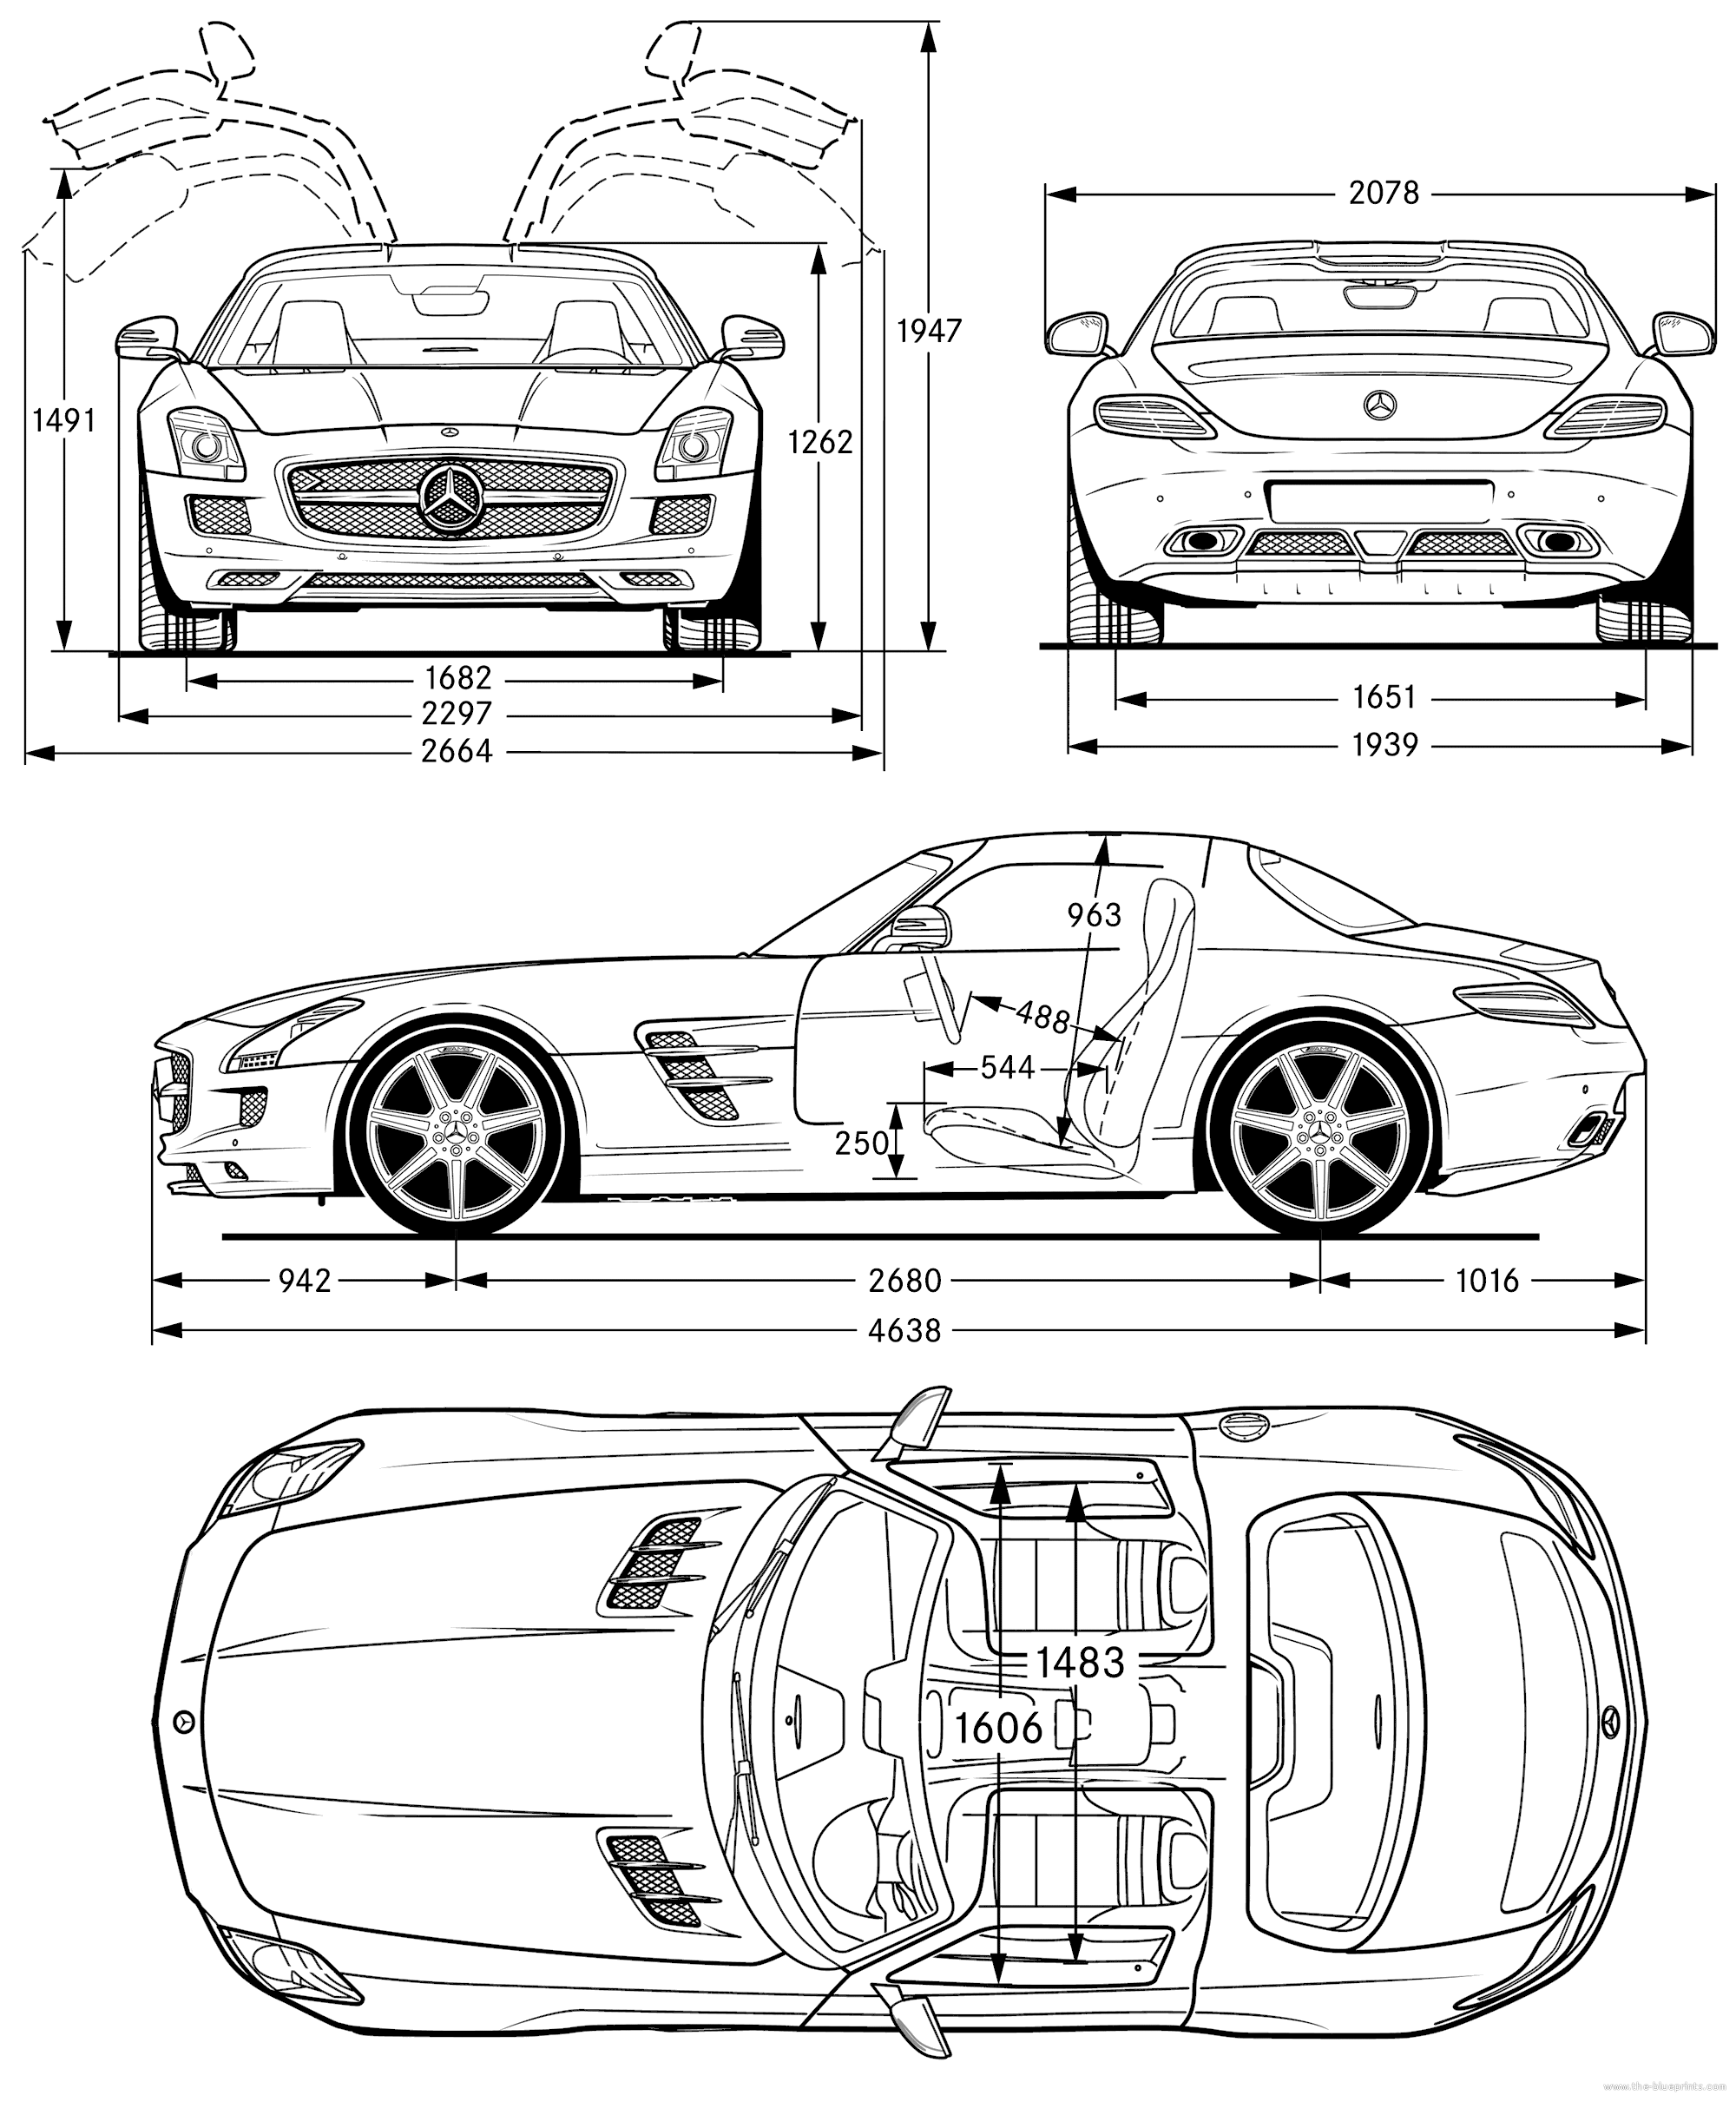 Mercedes-Benz-AMG-SLS-2011-The-Blueprints.com | Vehicles | Pinterest